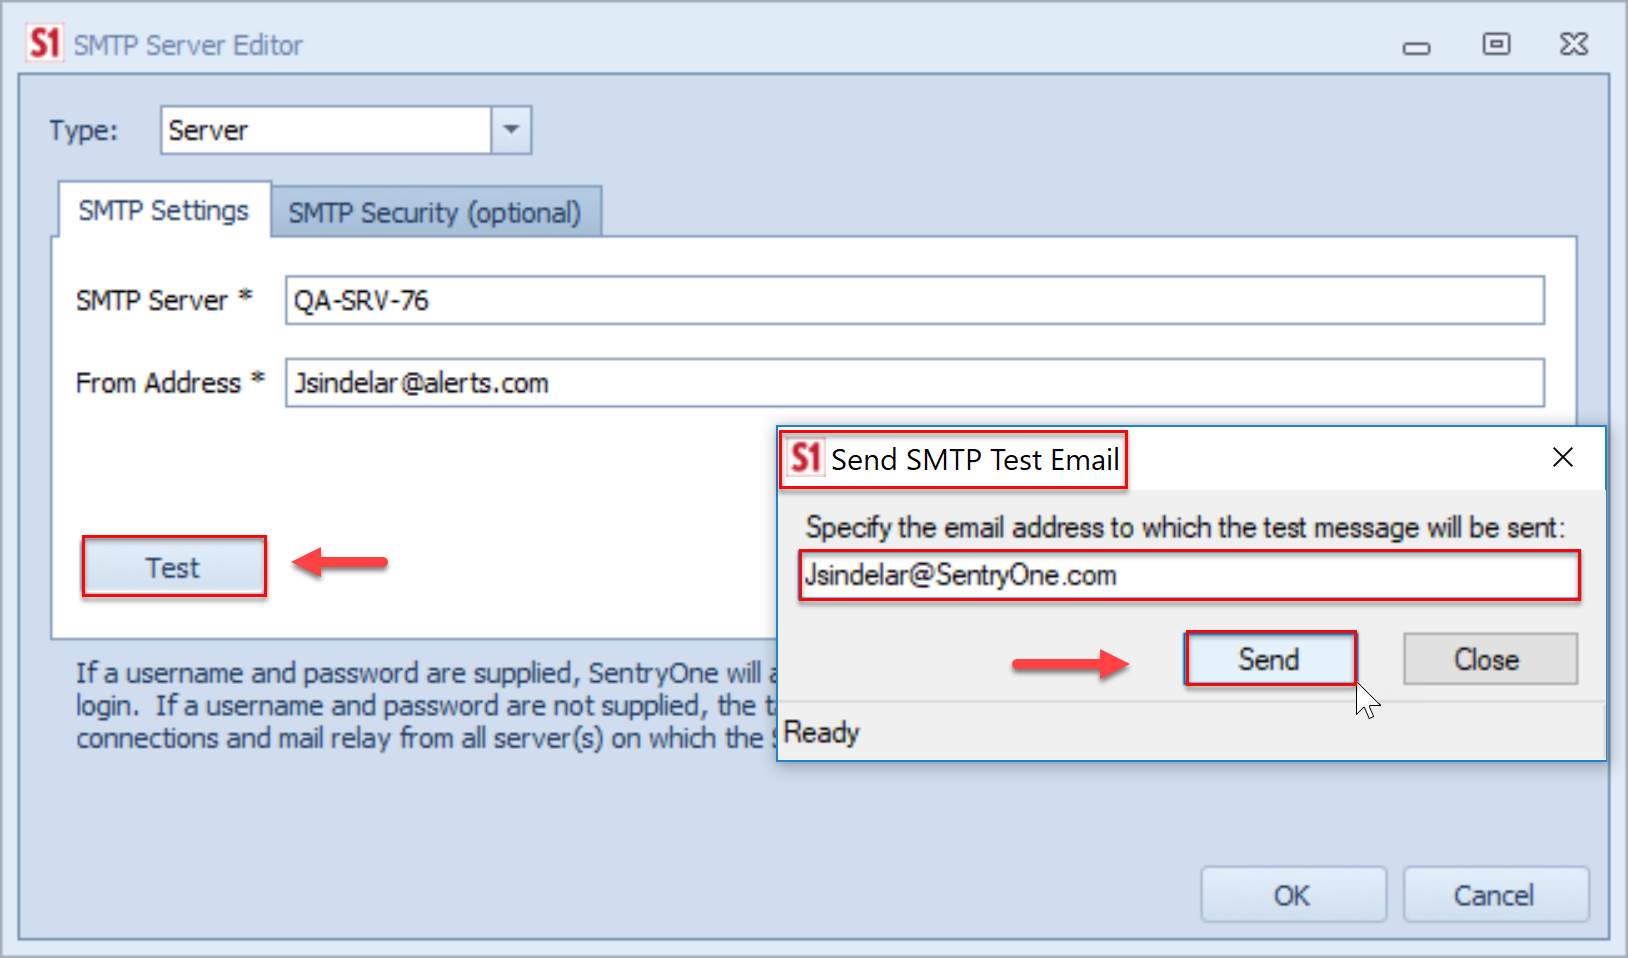 SentryOne SMTP Server Editor Send SMTP Test Email